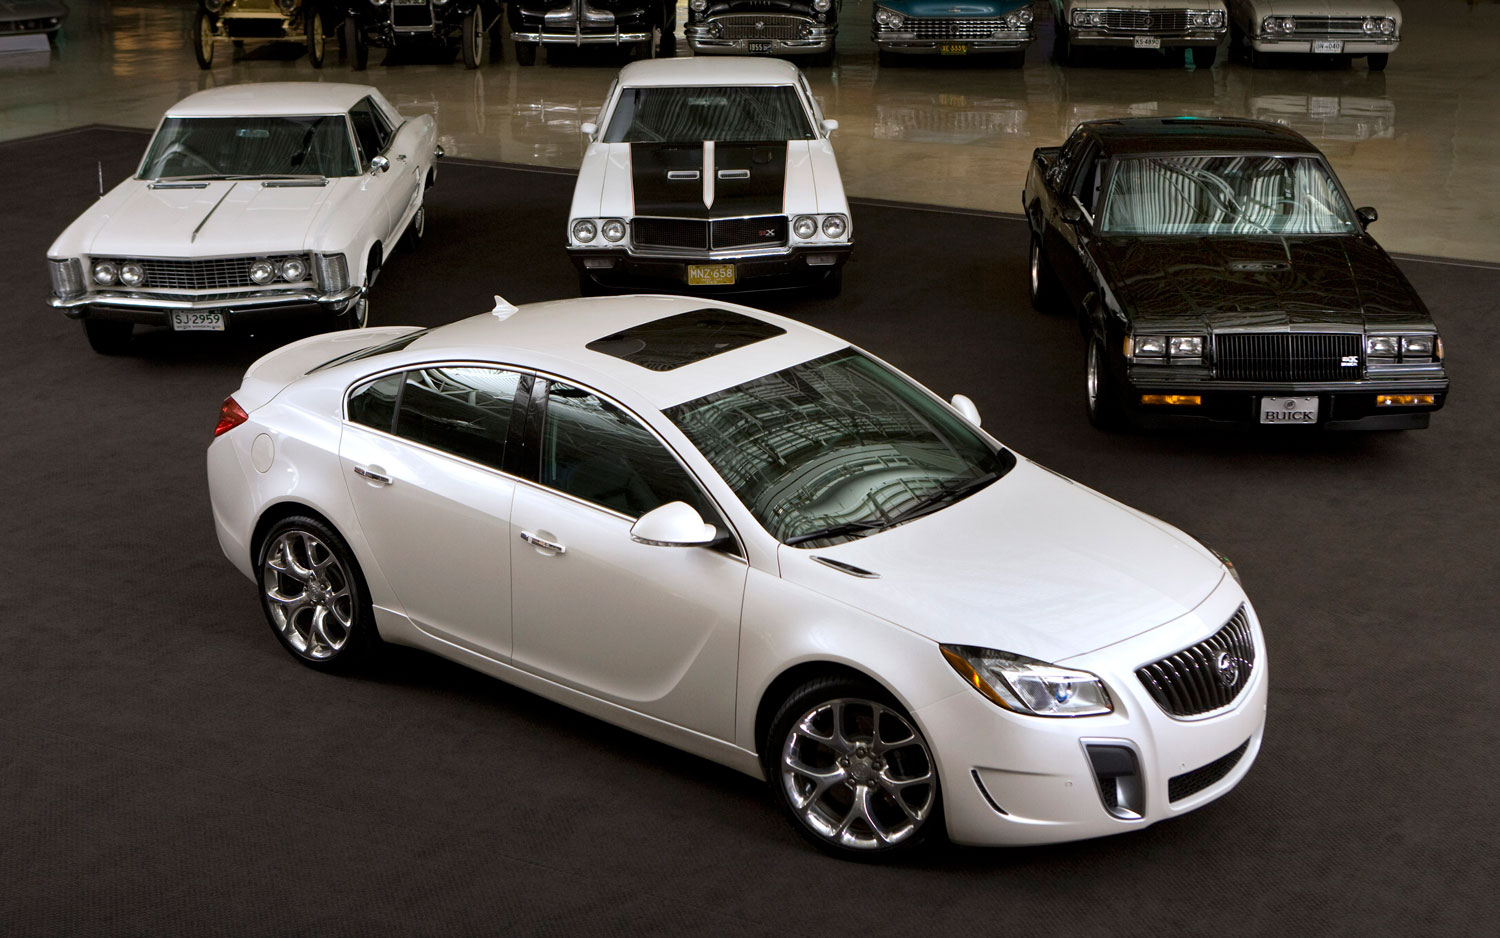 buick reveals its 10 most collectible cars list -- do you agree